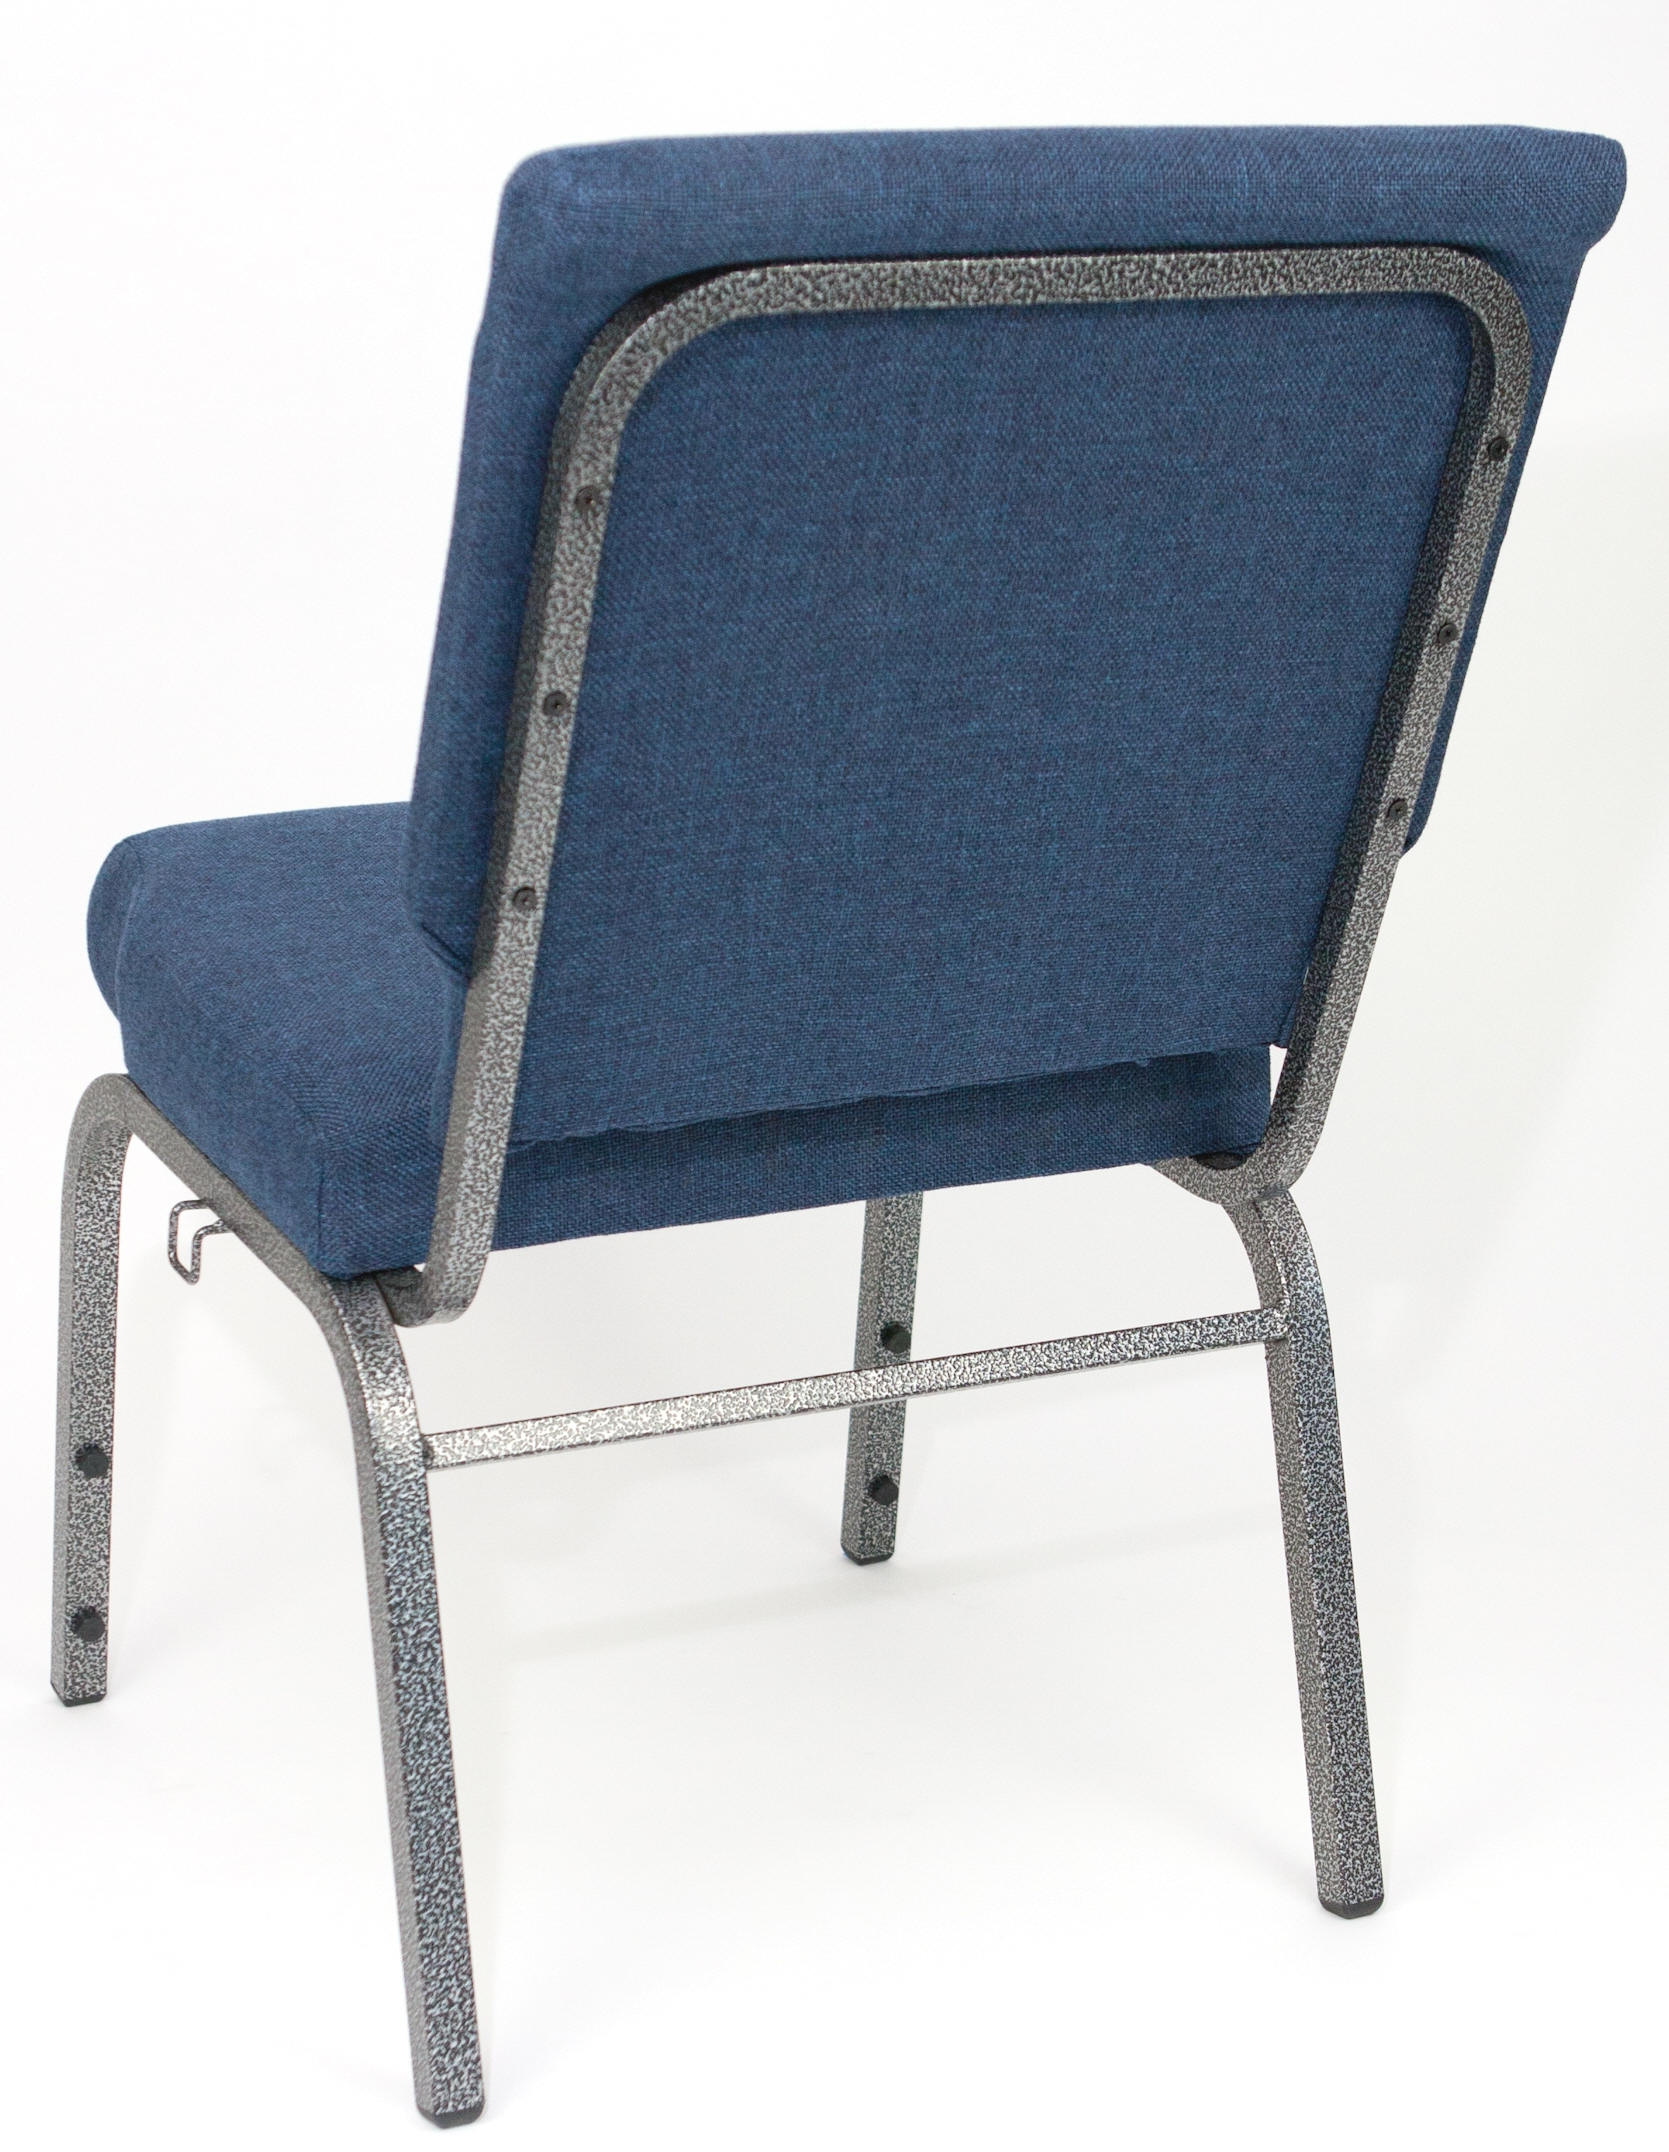 church chairs direct how to make a swivel chair stationary chapel chuch wholesale